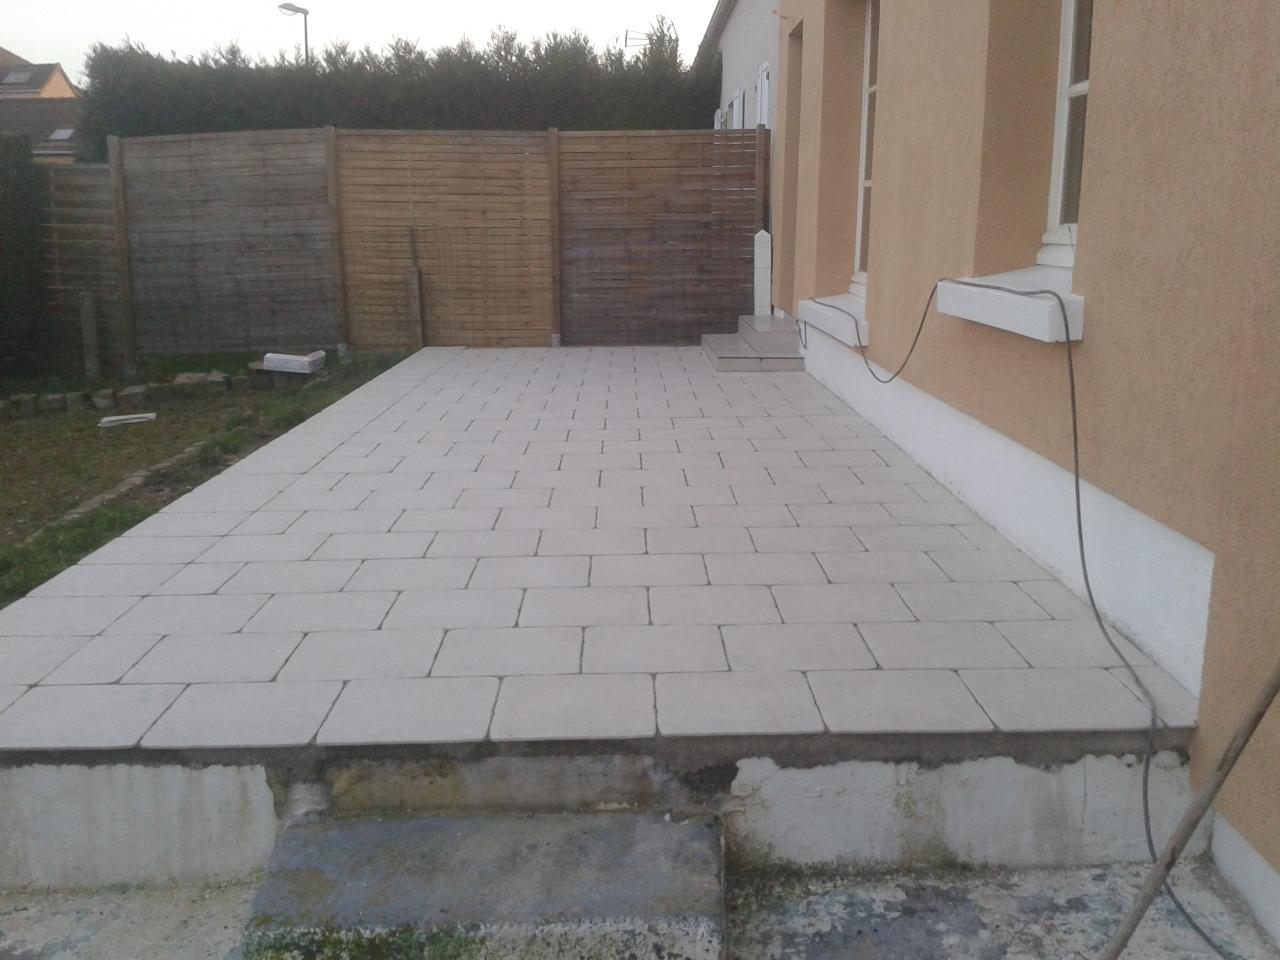 Pose carrelage pose carrelage ext rieur sur dalle b ton for Pose carrelage